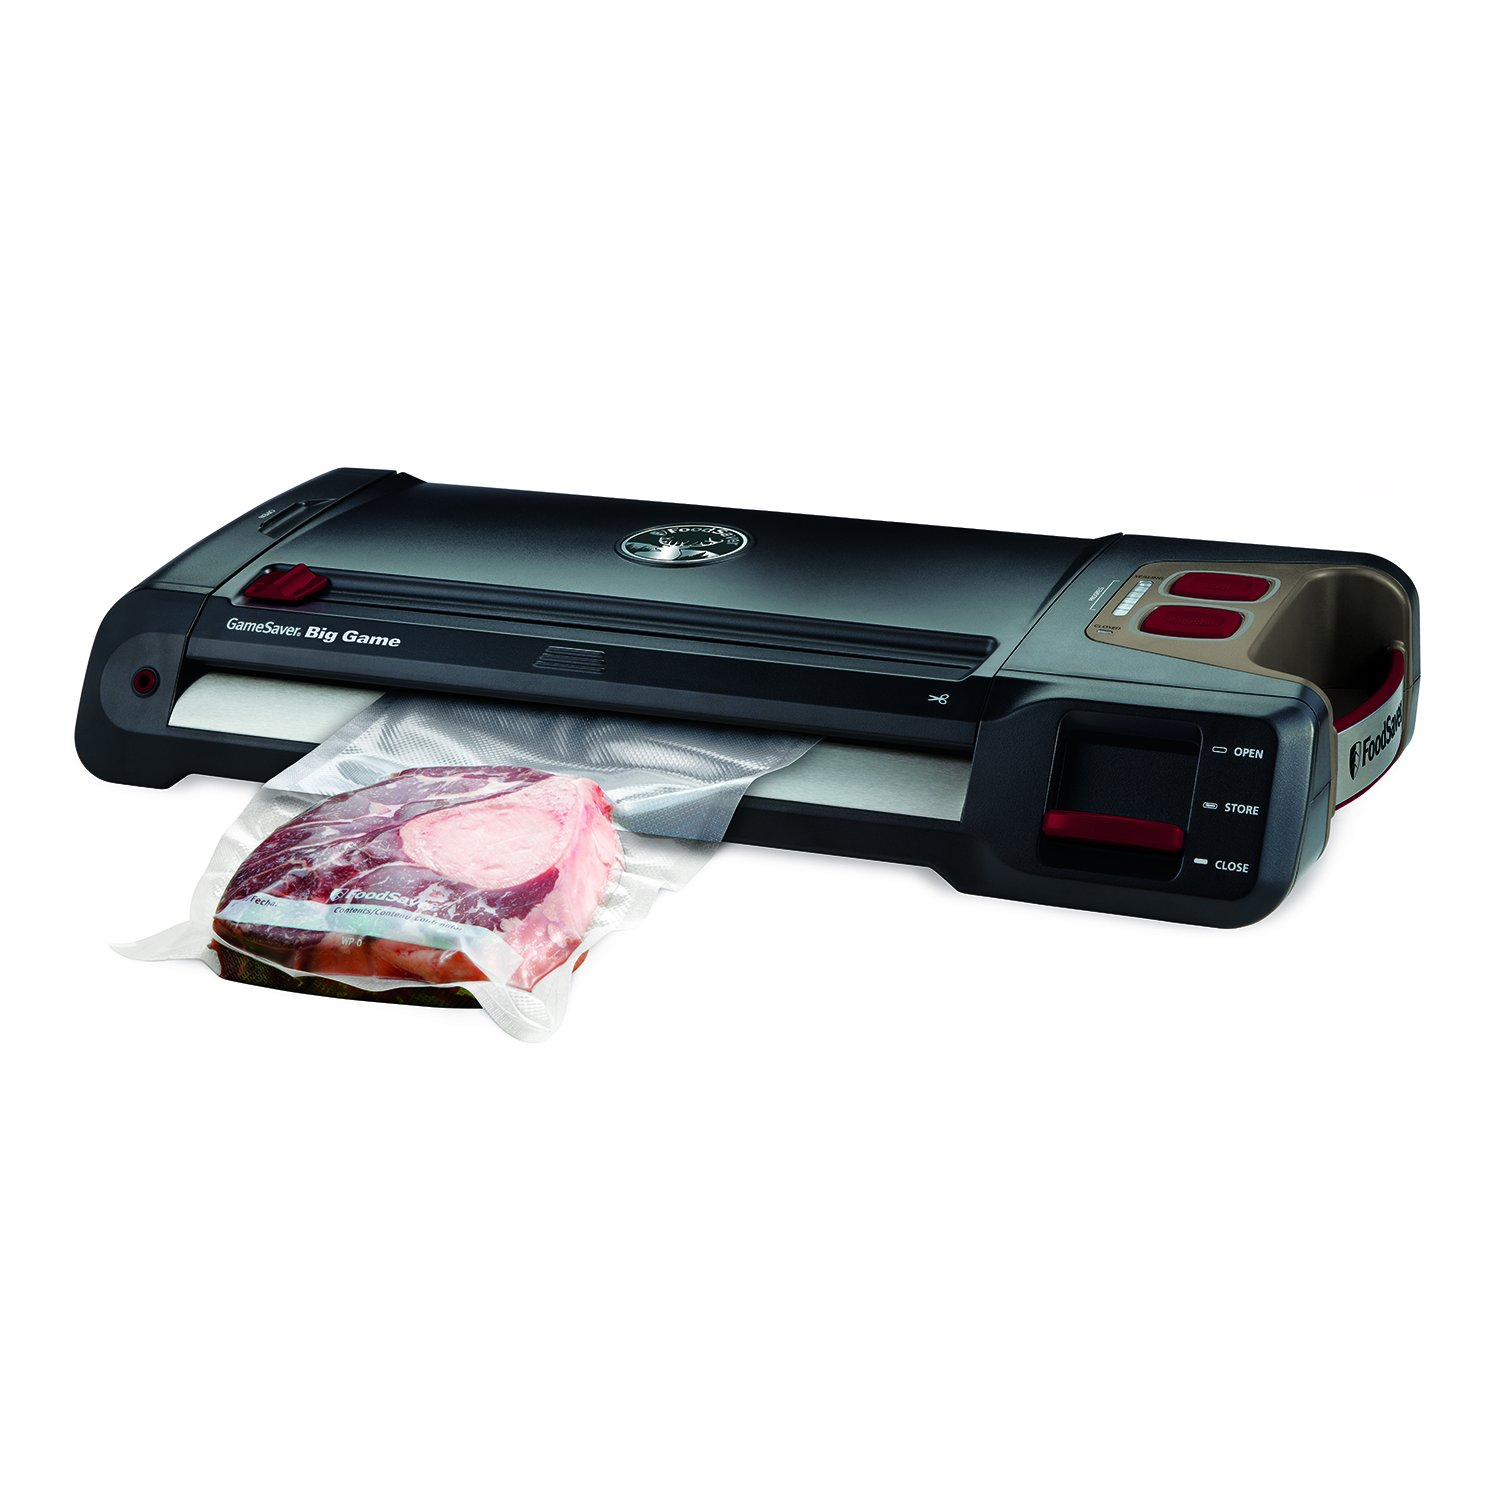 FoodSaver GameSaver Big Game Plus Vacuum Sealer, Black by FoodSaver (Image #1)